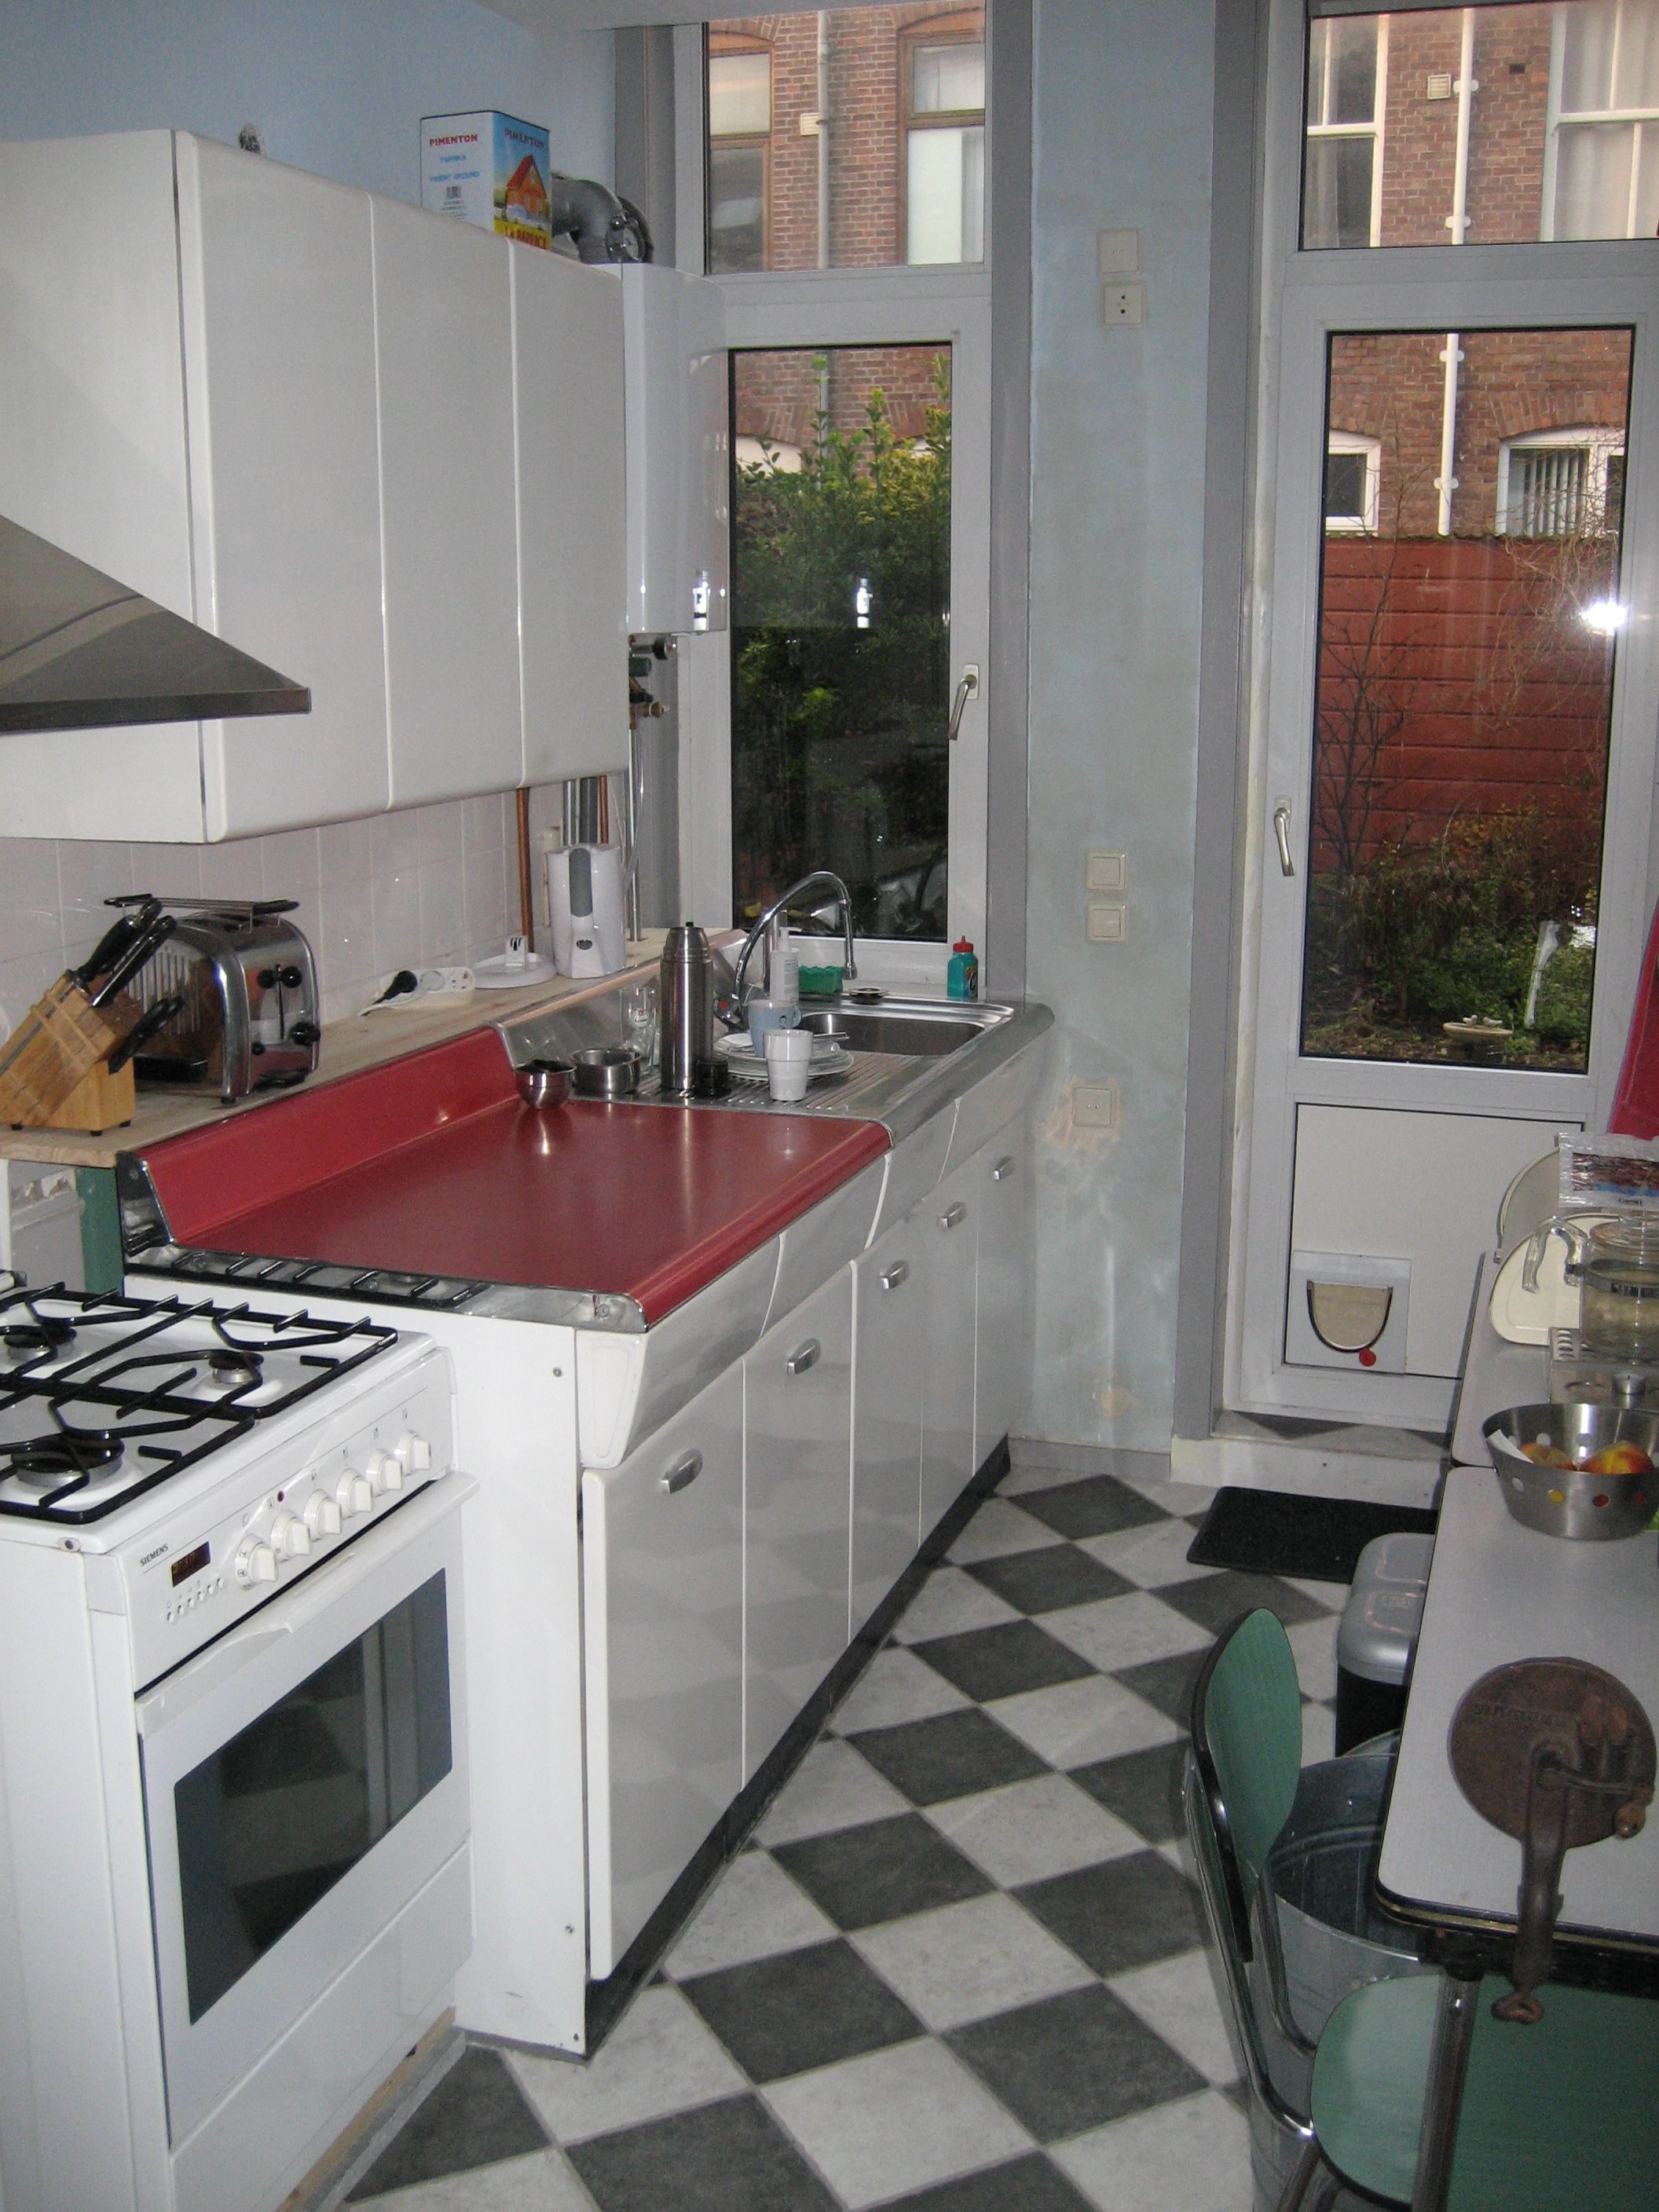 Fifties Kitchen (Franke American Kitchen)